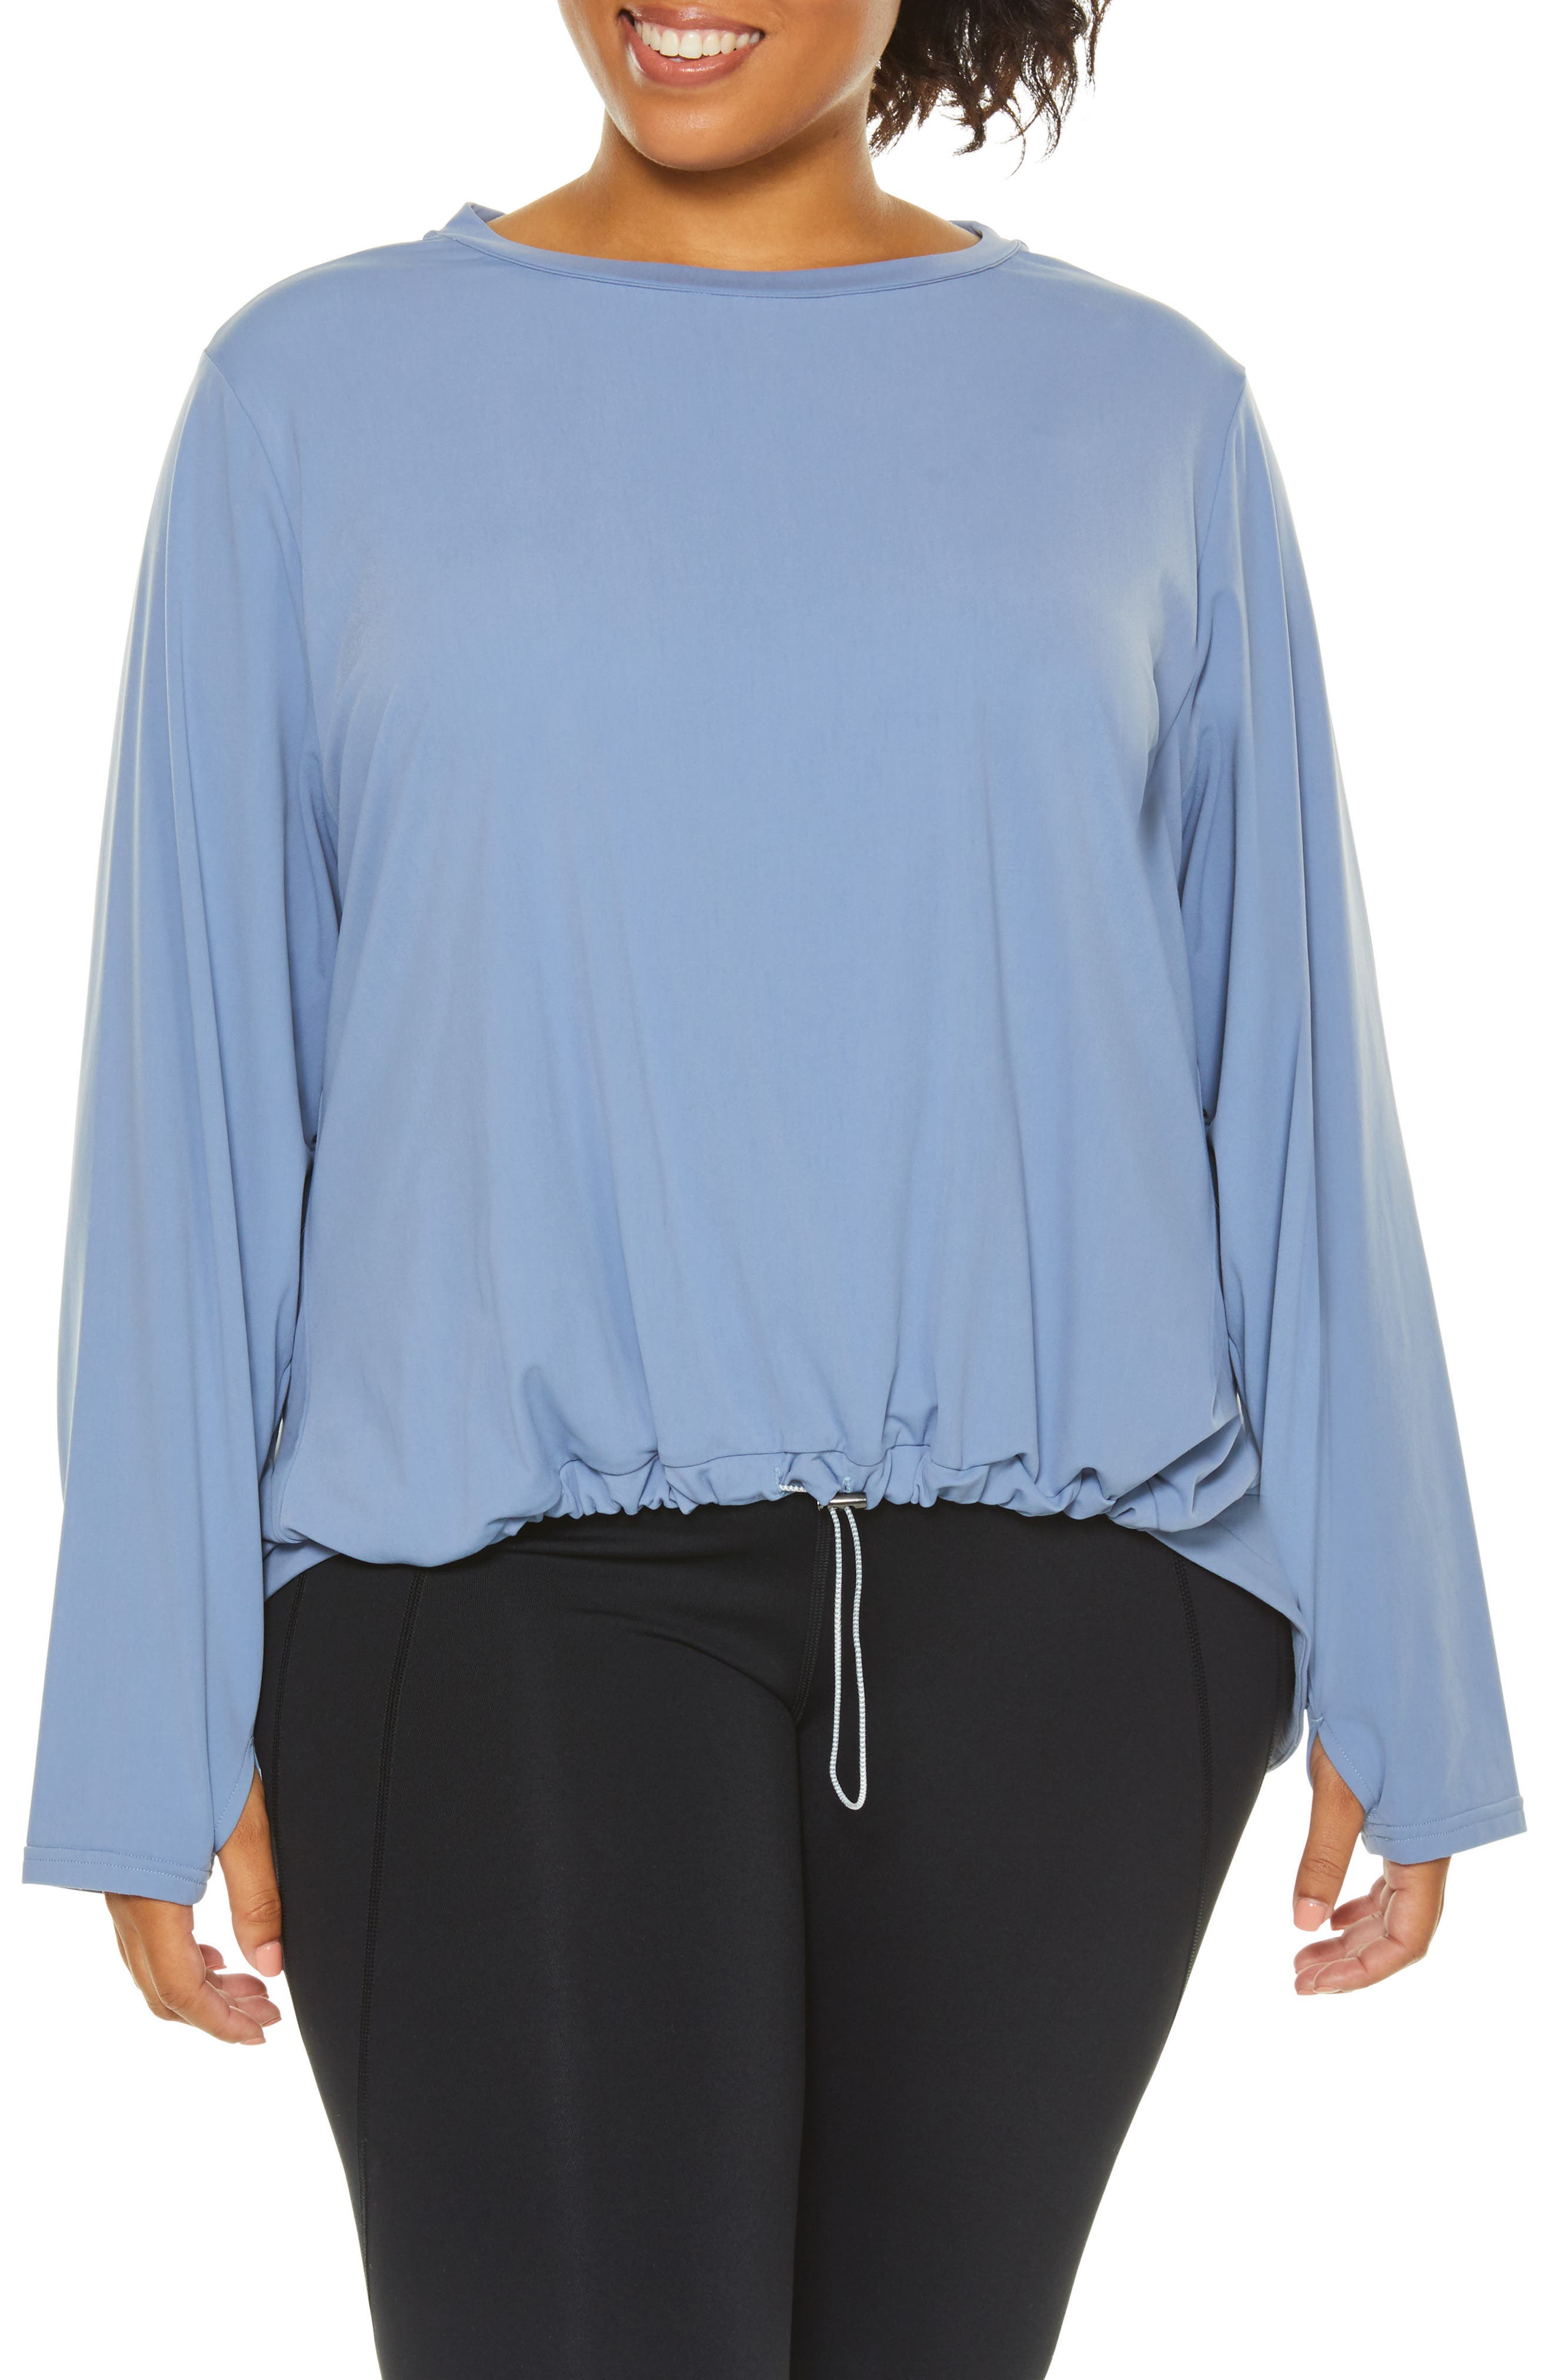 SHAPE ACTIVEWEAR, Opt Out High/Low Sweatshirt, Main thumbnail 1, color, INFINITY